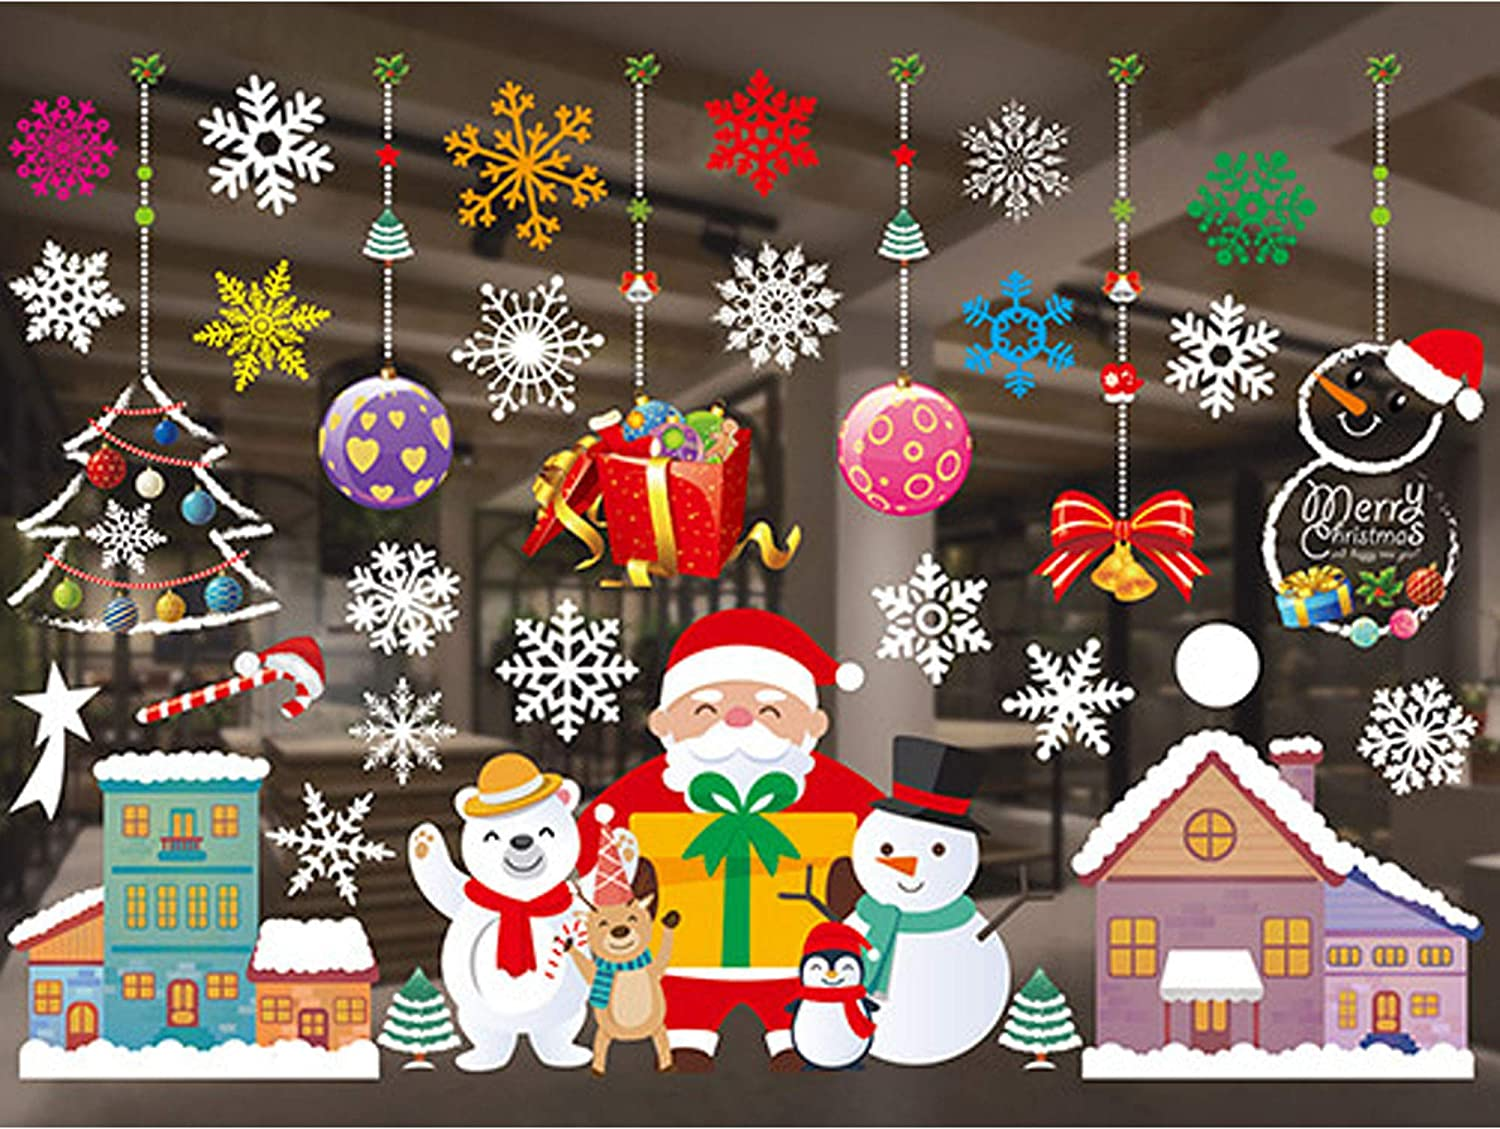 Christmas Window Glass Clings Stickers Decals Decoration PVC Xmas Snowflakes Decals Decorations,Merry Christmas Dress Up DIY Static Stickers Decals, Santa Claus Decals Decorations for Home and Shop